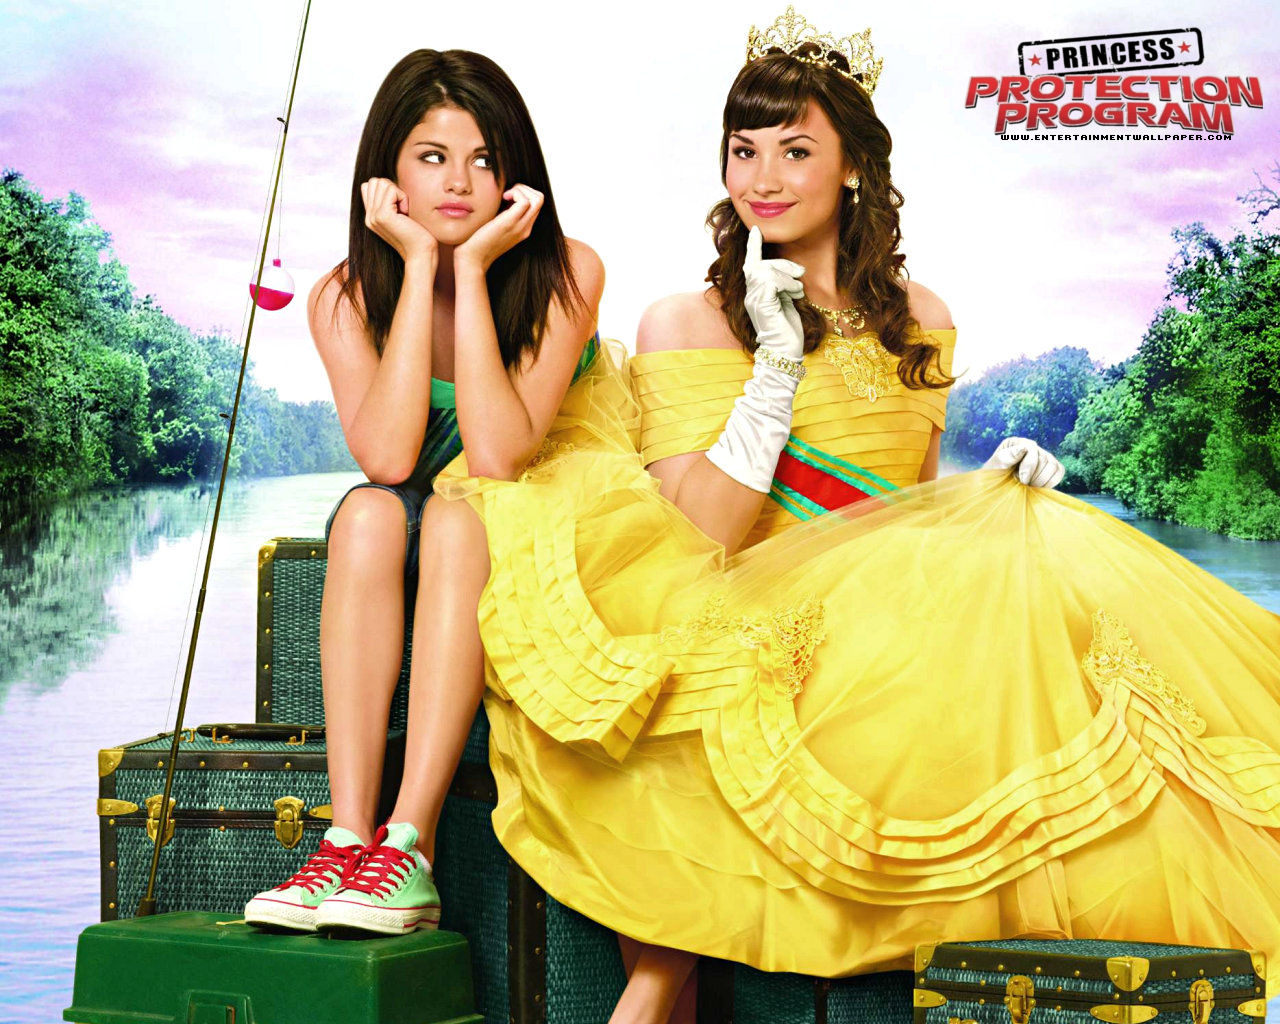 Princess Protection Program, Demi Lovato and Selena Gomez